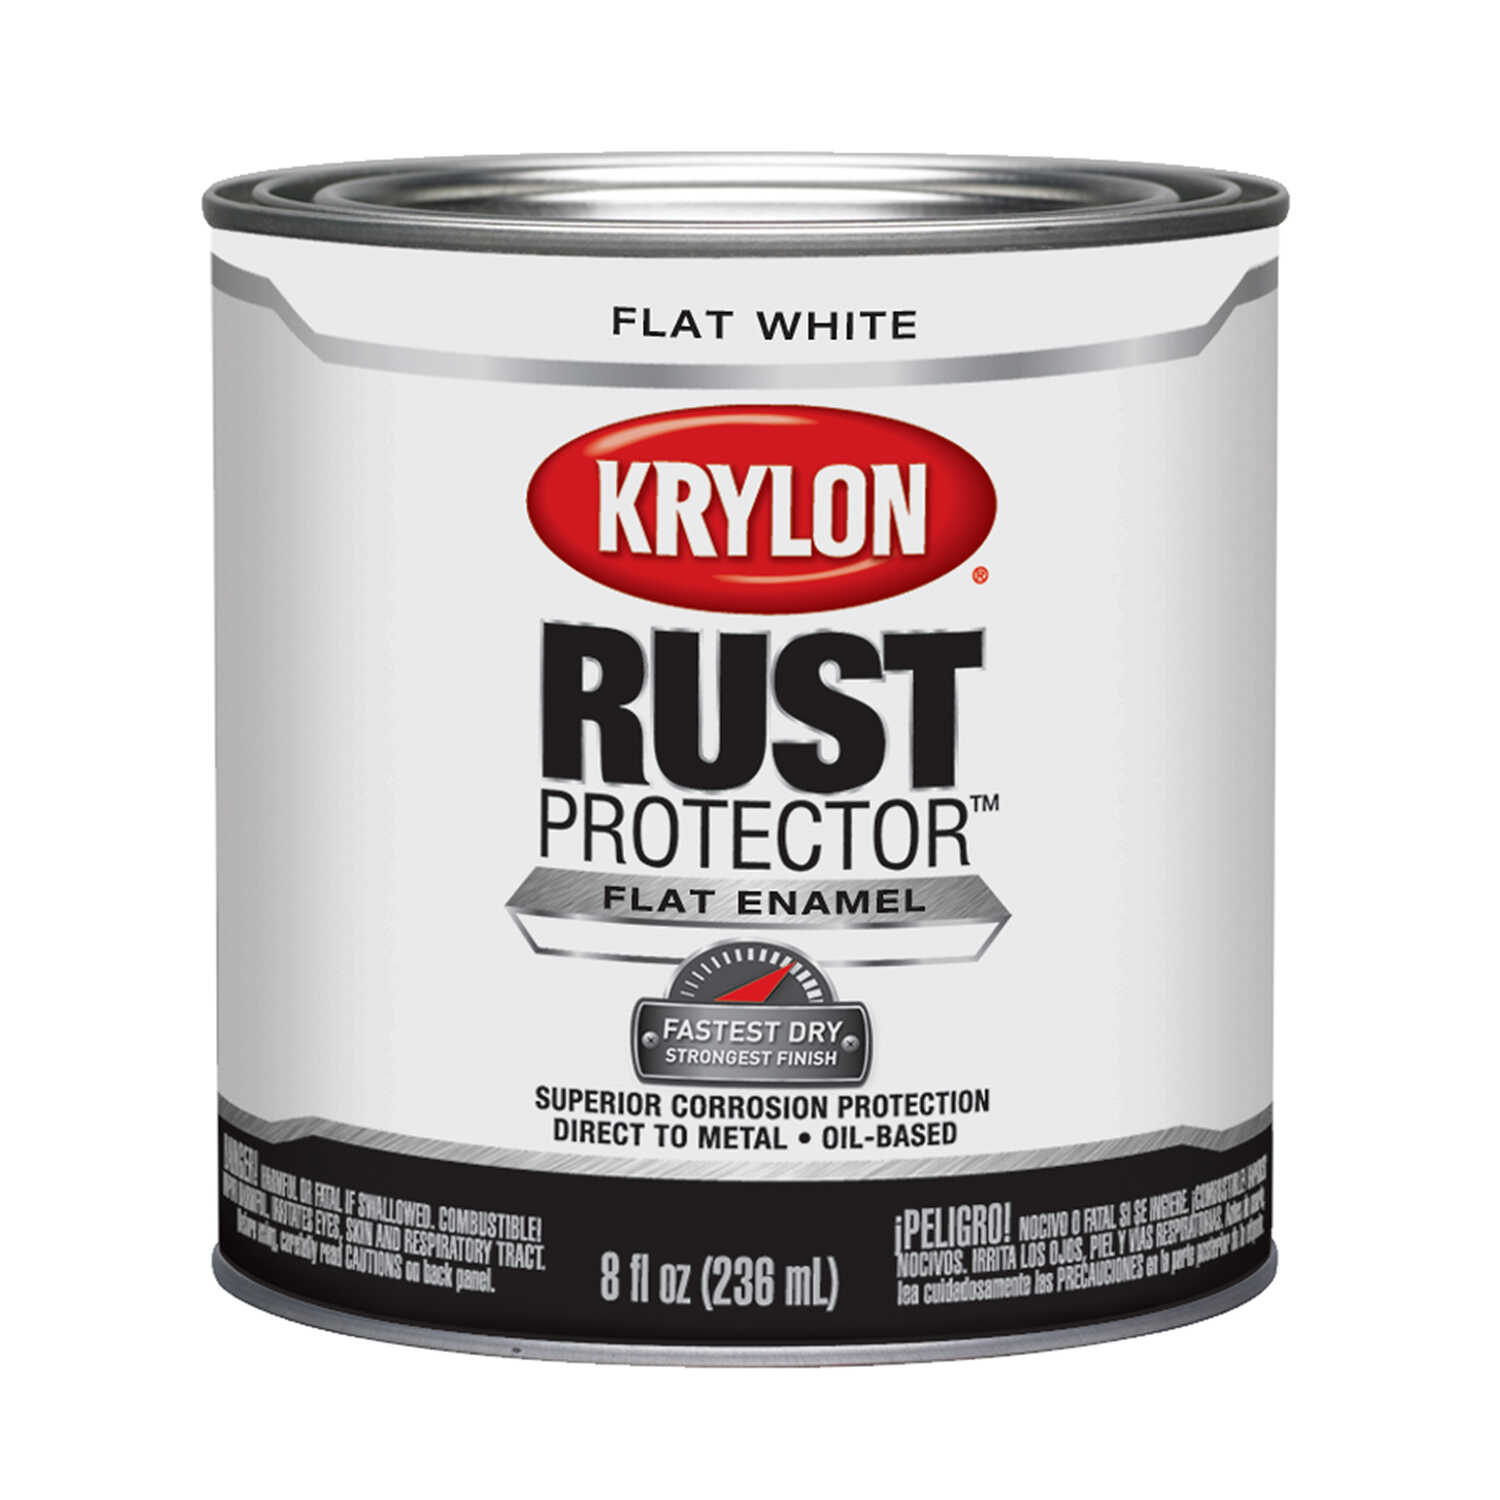 Krylon  Indoor and Outdoor  Flat  Enamel  Rust Protector Paint  32 pt. White